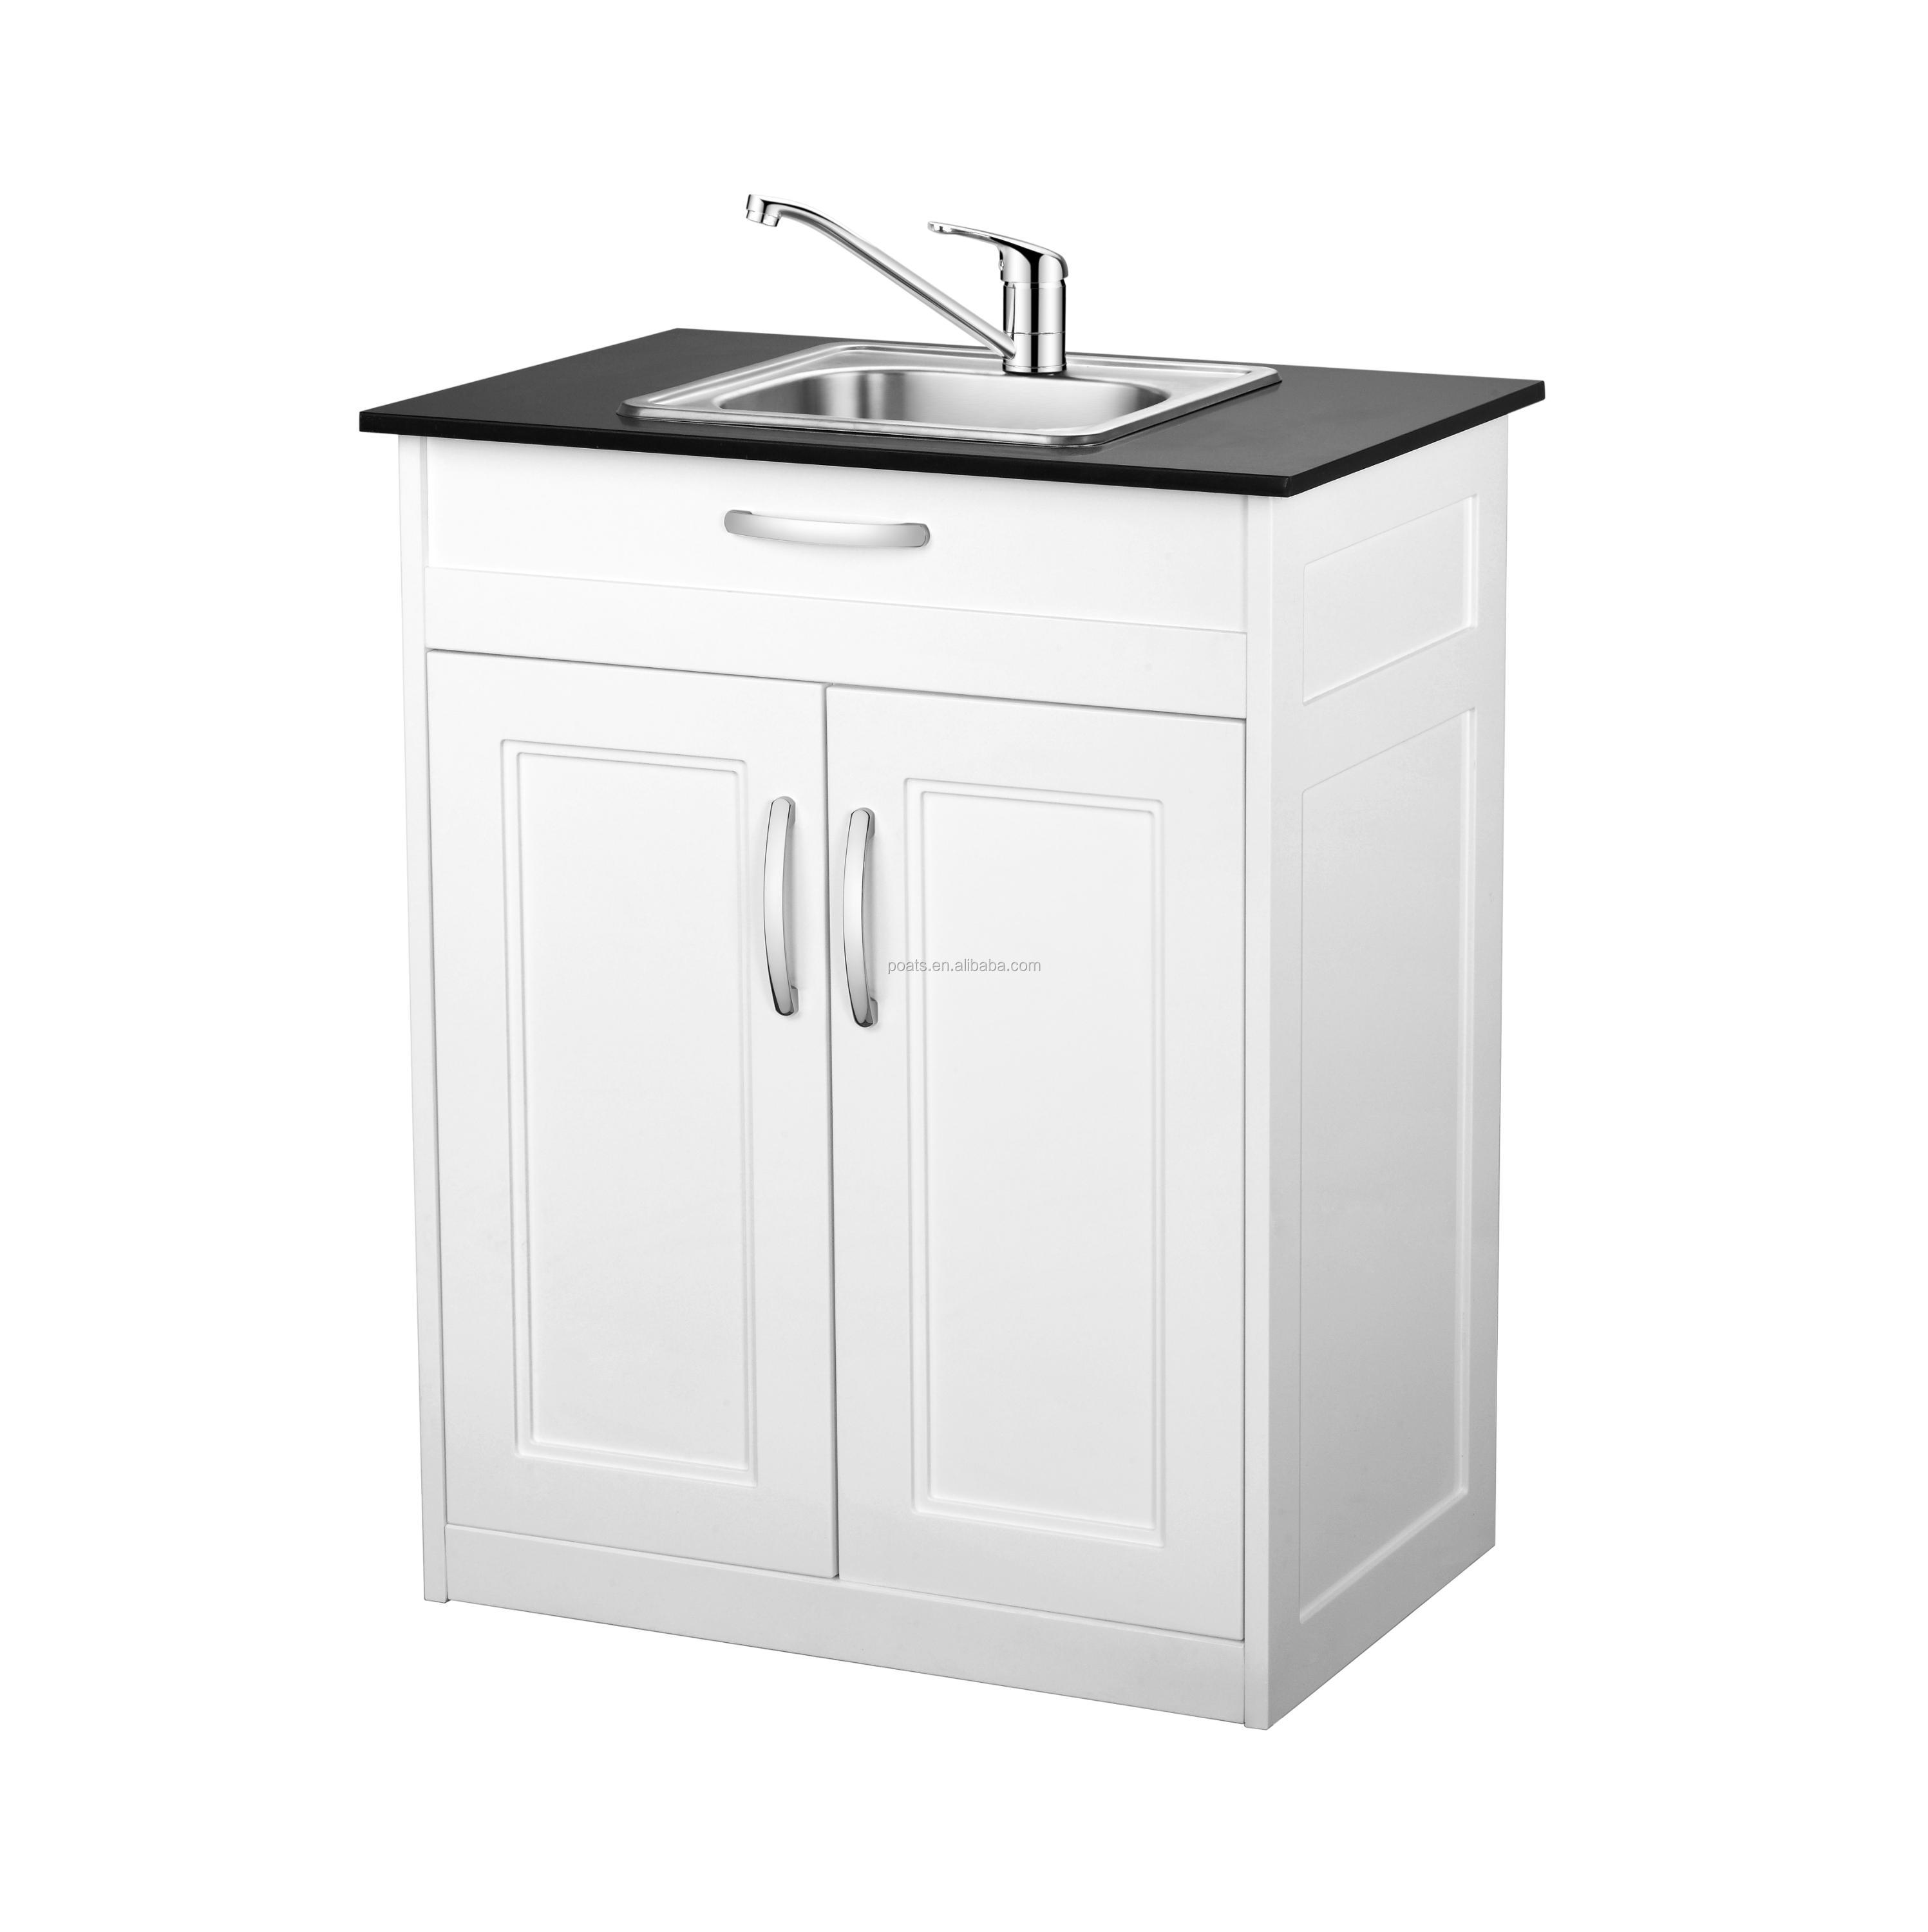 portable self contained stainless steel sink single basin buy portable self contained stainless steel sink single basin stainless steel sink single basin portable single basin product on alibaba com